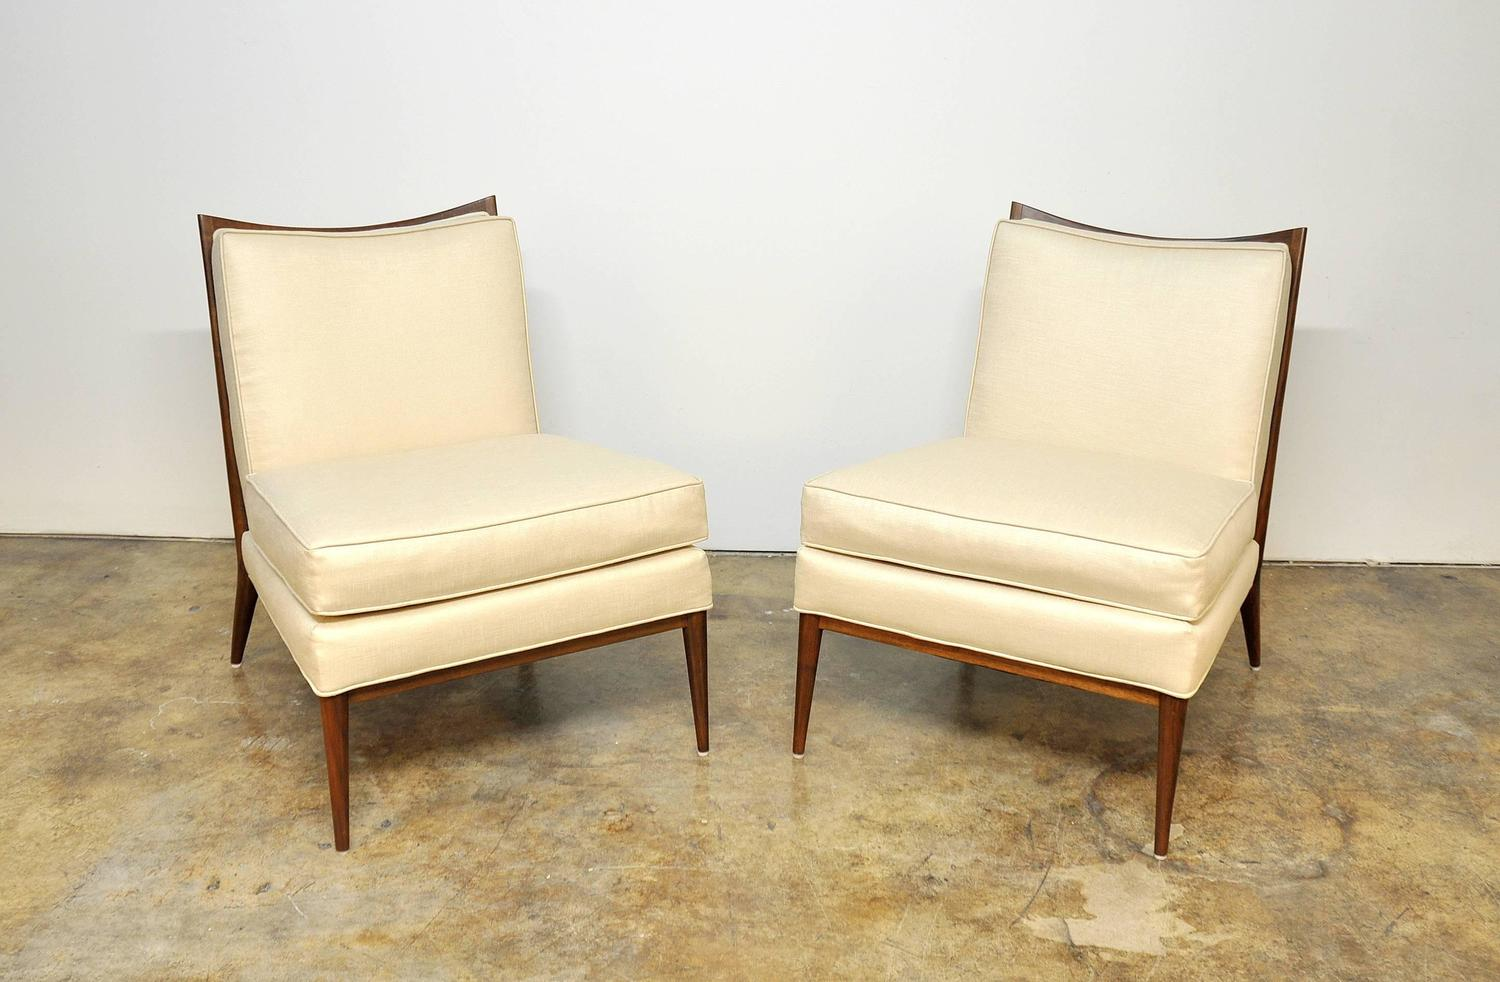 Pair of Paul McCobb for Directional 1320 Slipper Chairs